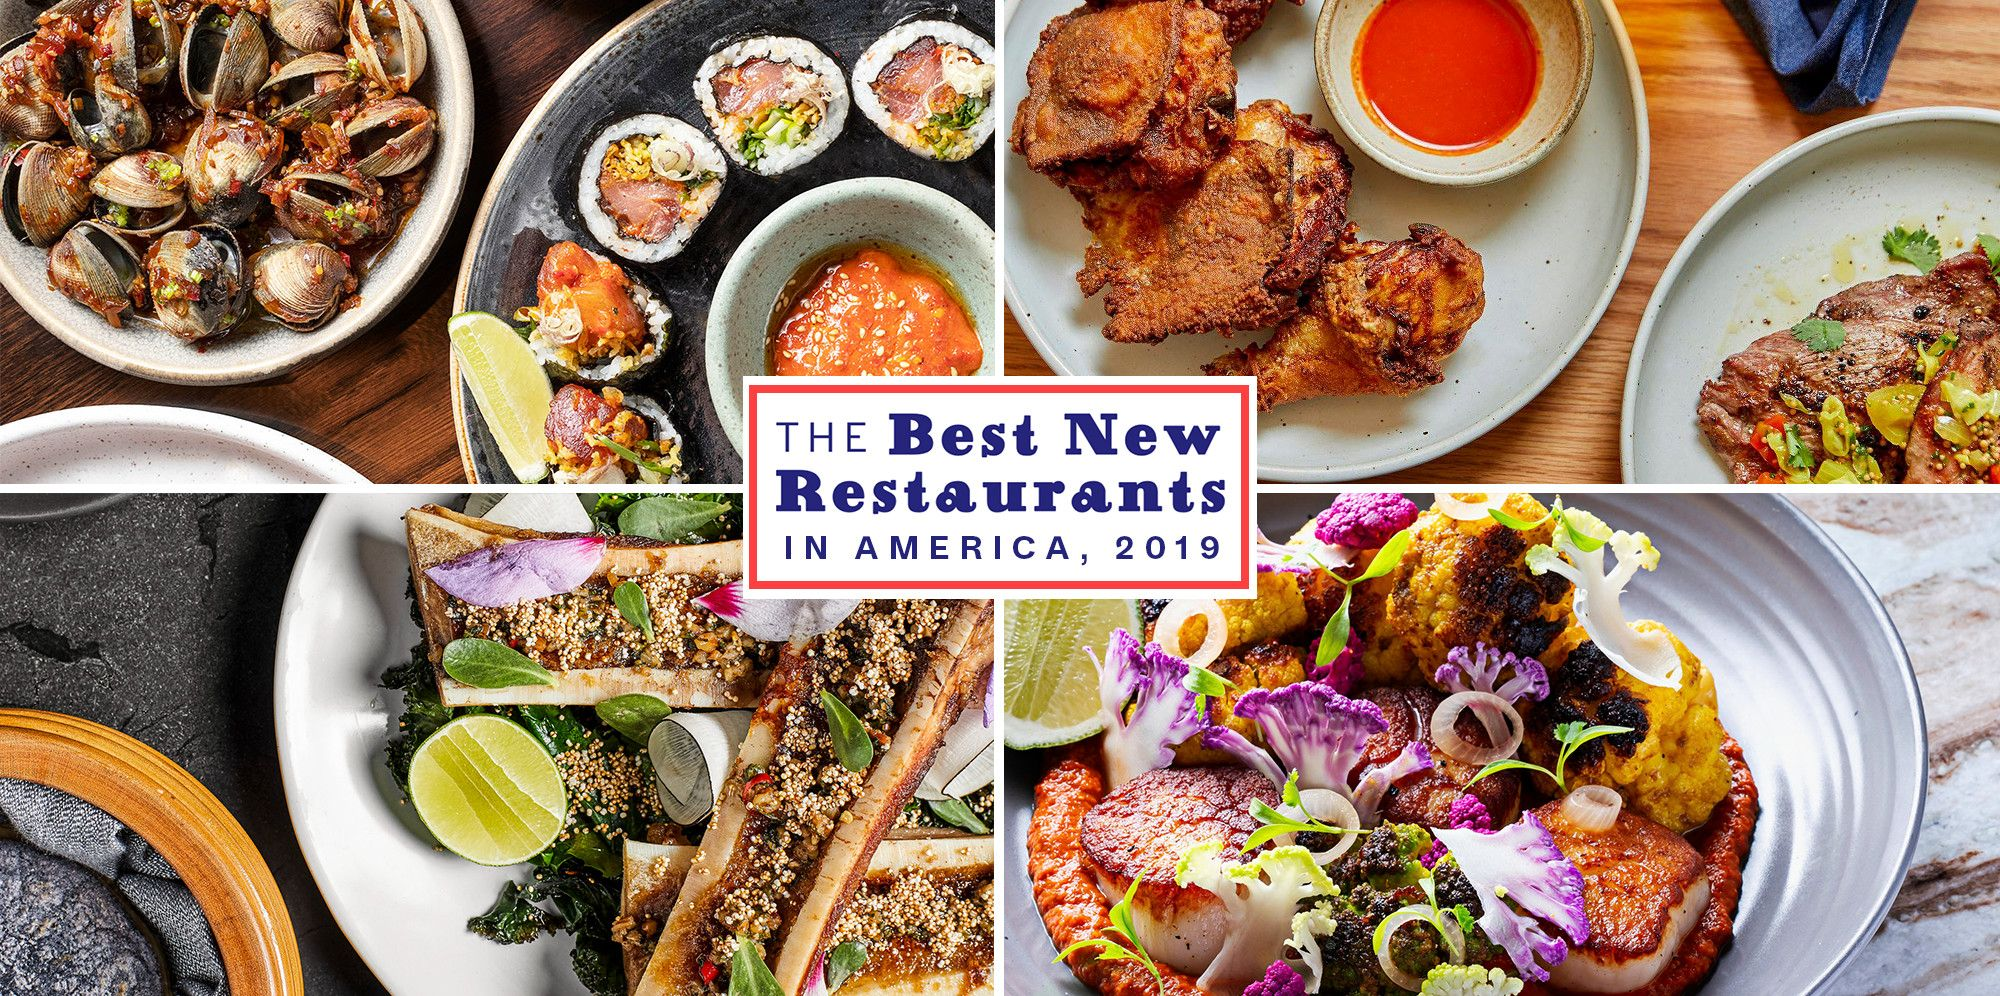 Best Restaurants In New Orleans 2020.22 Best New Restaurants In America 2019 Top Places To Eat